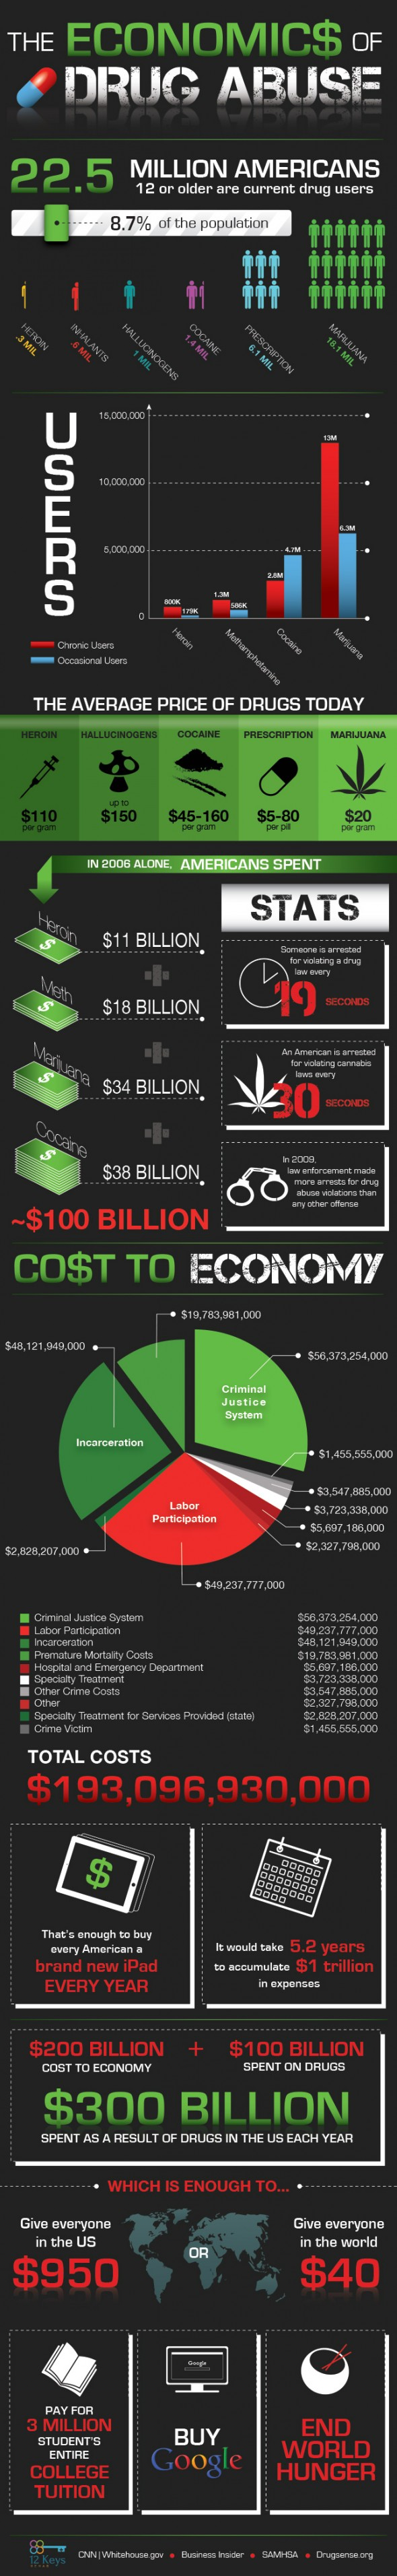 The economics of drug abuse